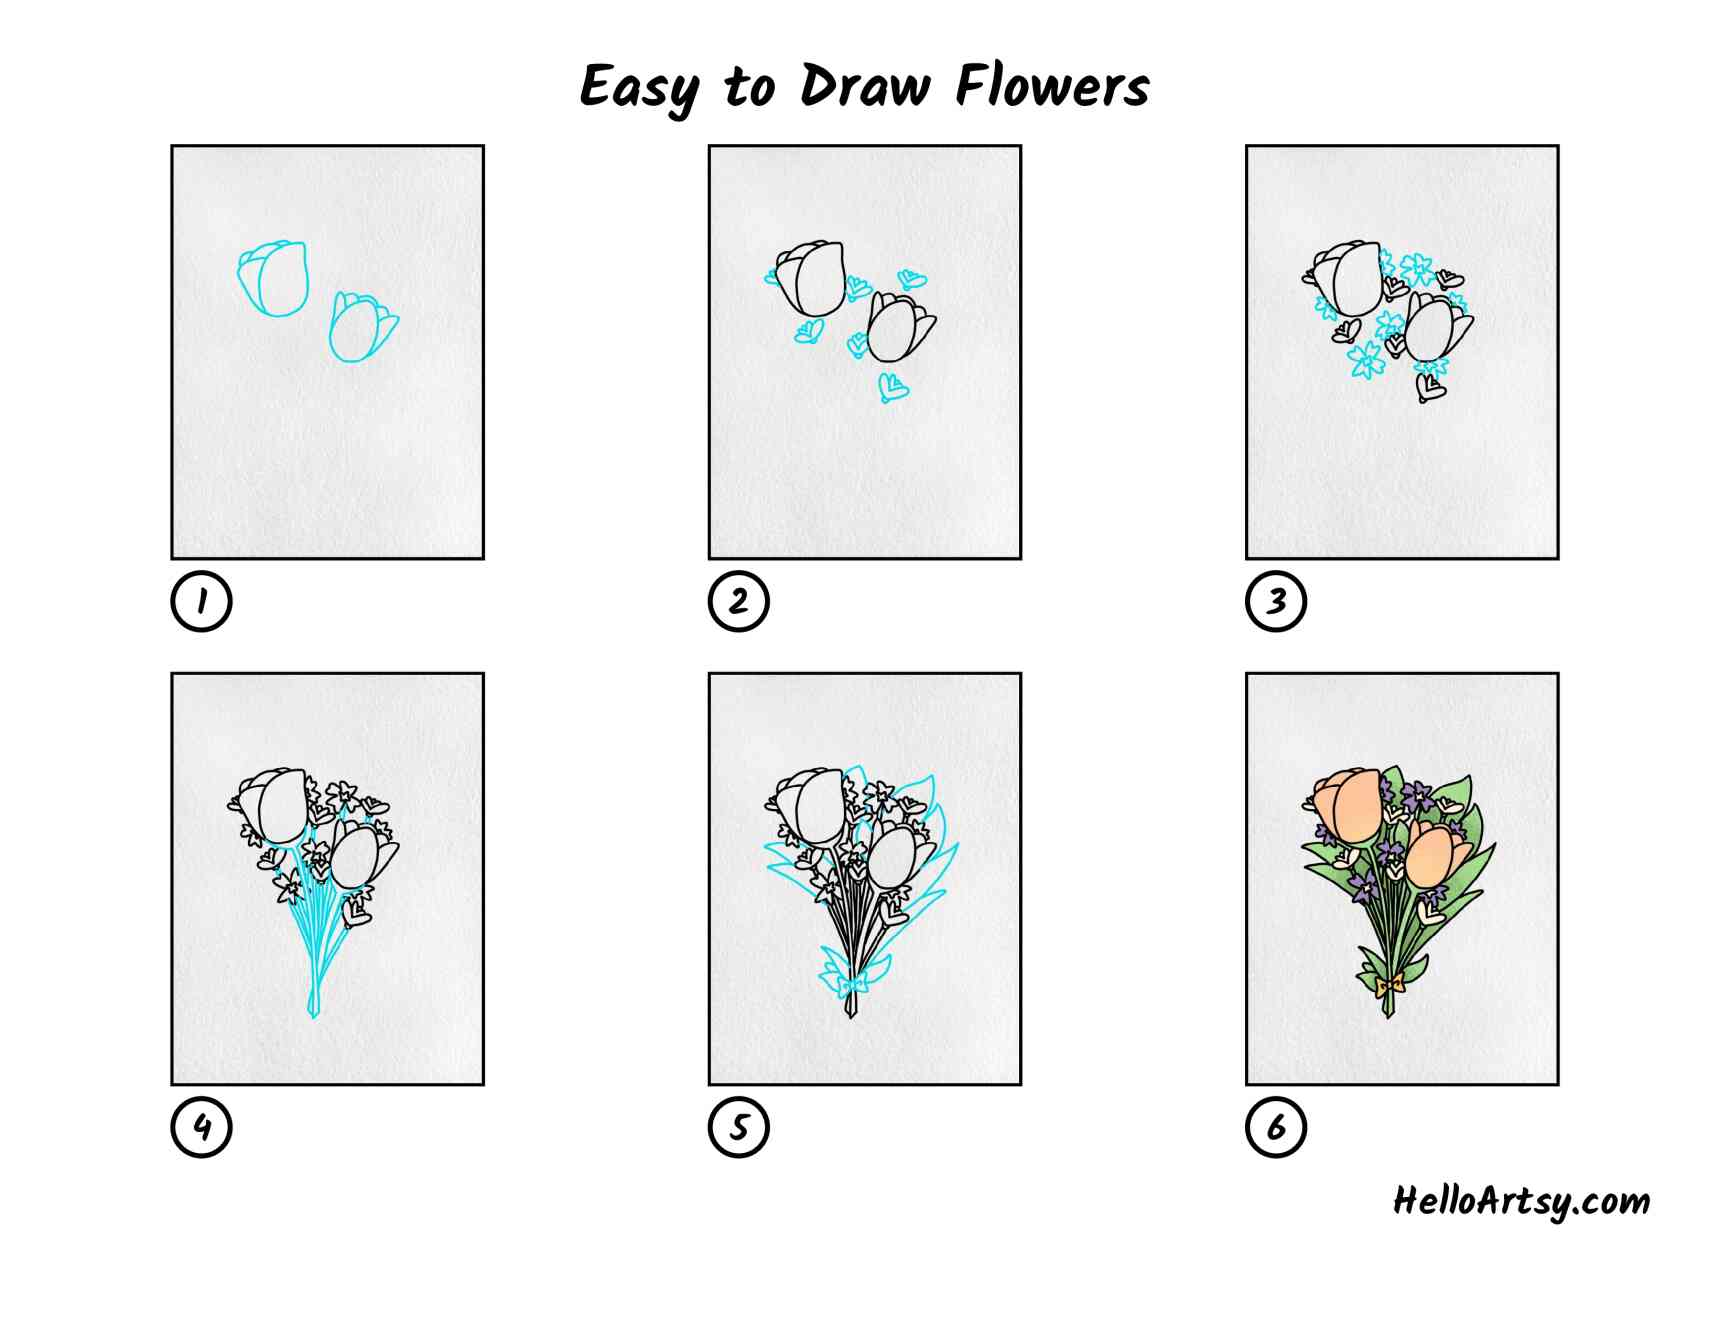 Easy To Draw Flowers: All Steps